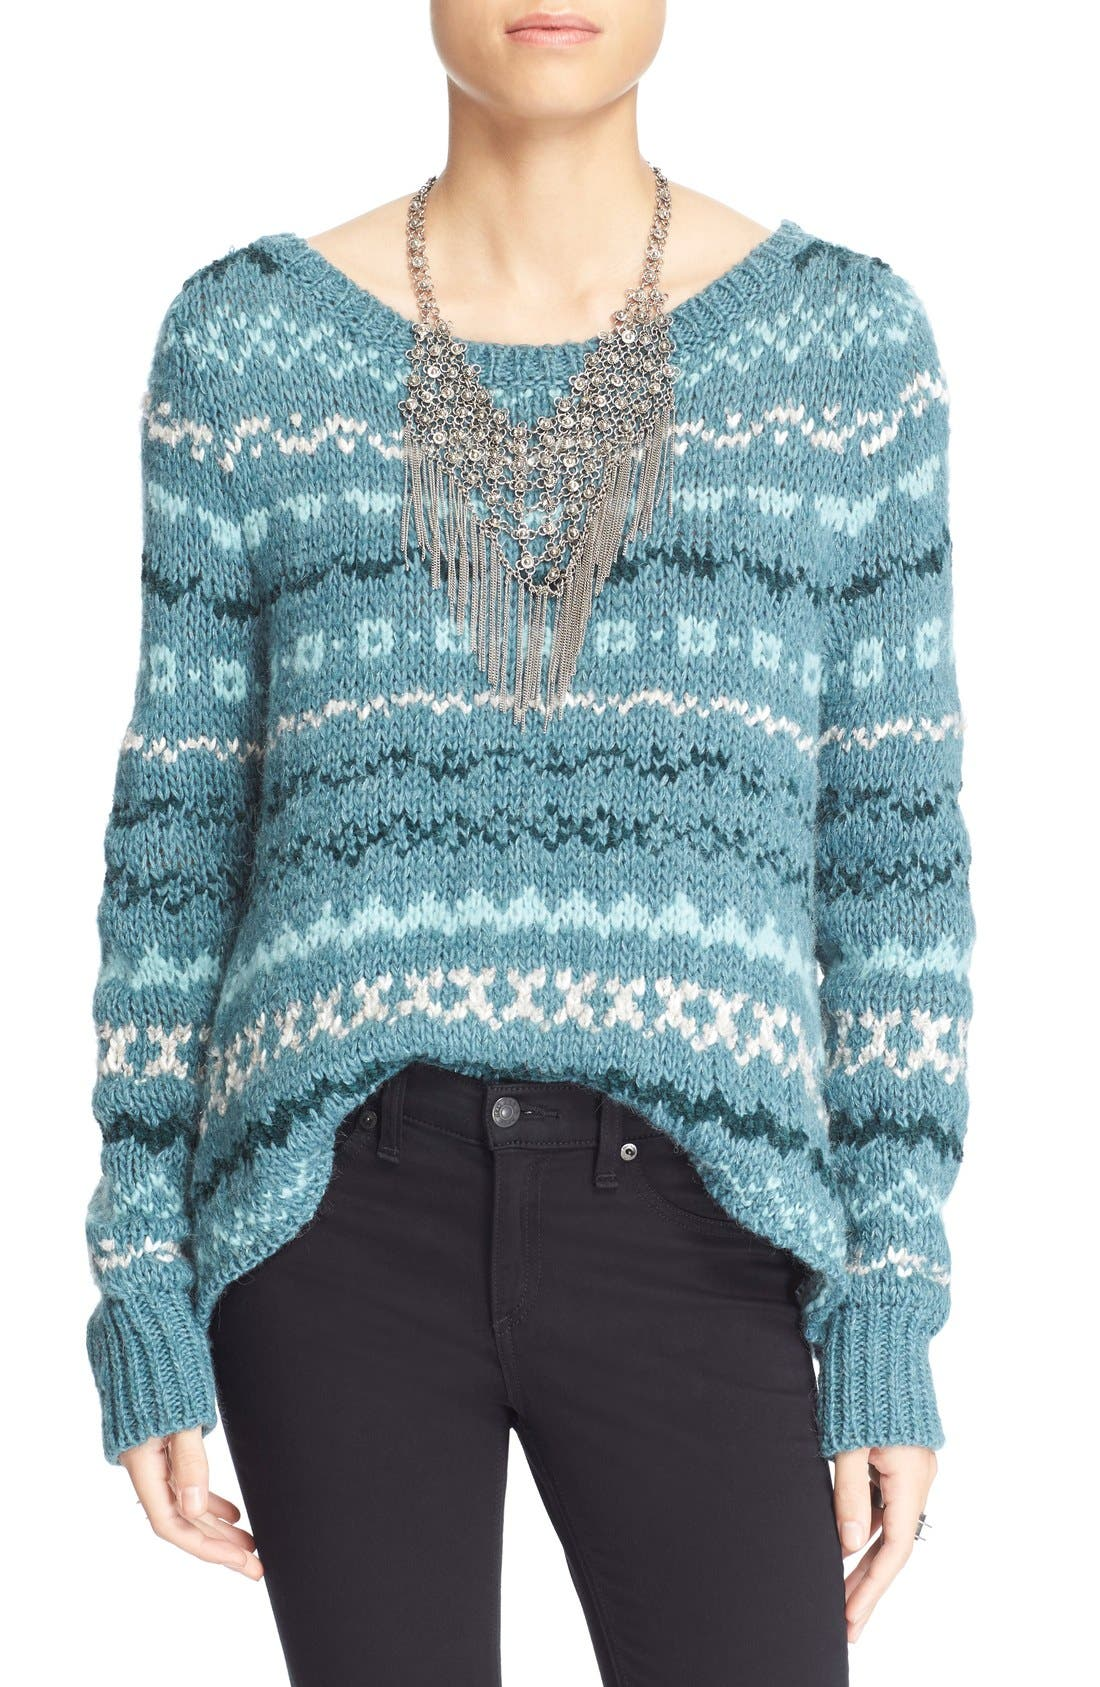 Alternate Image 1 Selected - Free People 'Through the Storm' Sweater